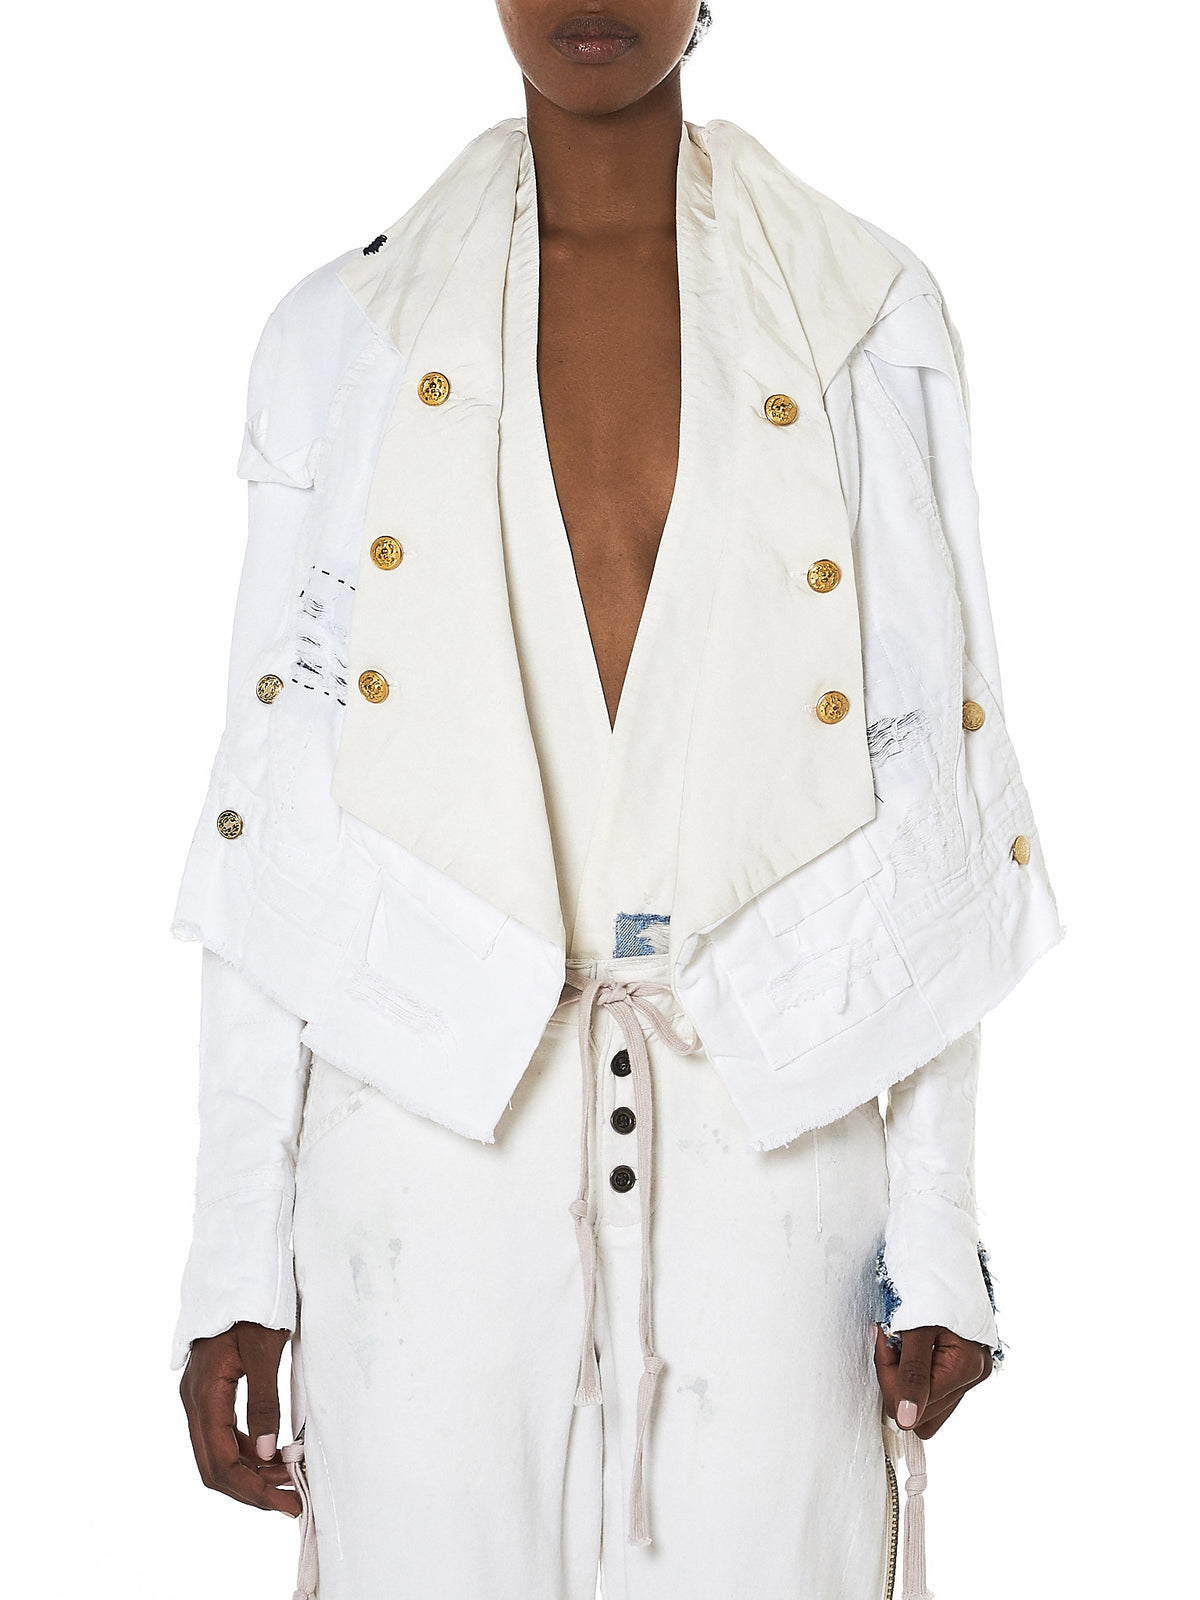 Greg Lauren Cropped Jacket - Hlorenzo Front